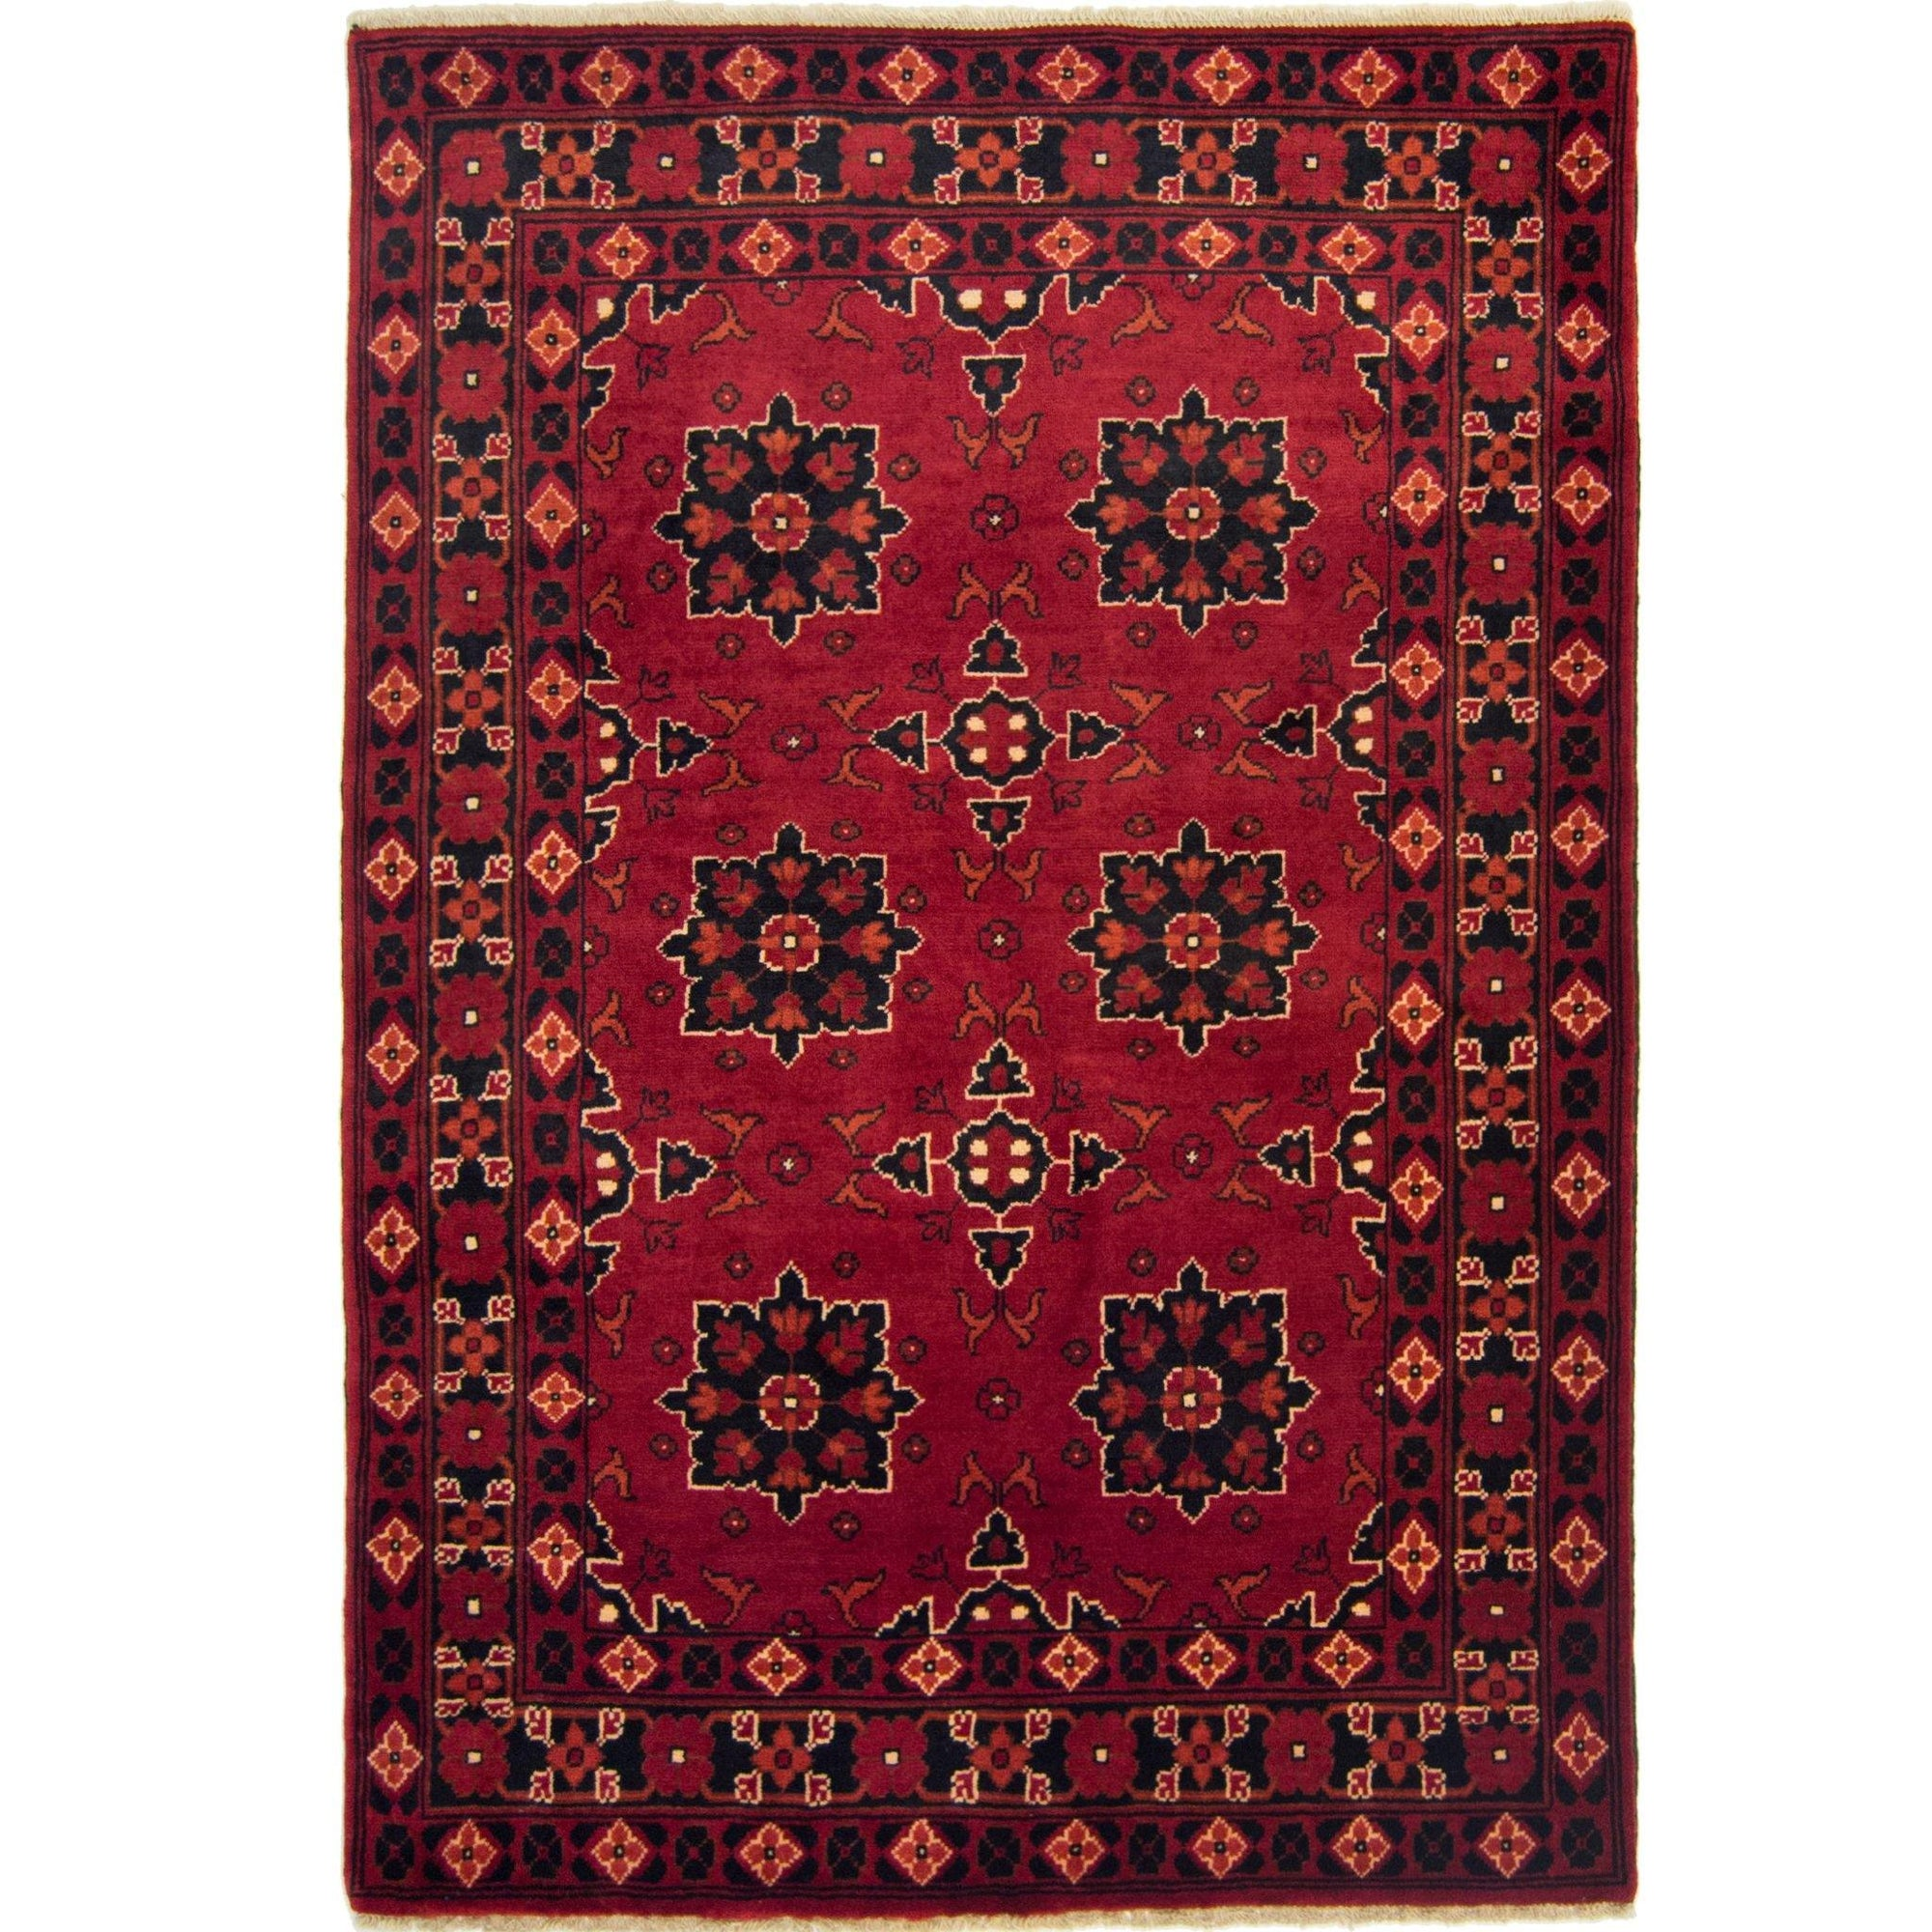 Afghan Hand-knotted Wool Tribal Khal Mohammadi Rug 108cm x 154cm Persian-Rug | House-of-Haghi | NewMarket | Auckland | NZ | Handmade Persian Rugs | Hand Knotted Persian Rugs